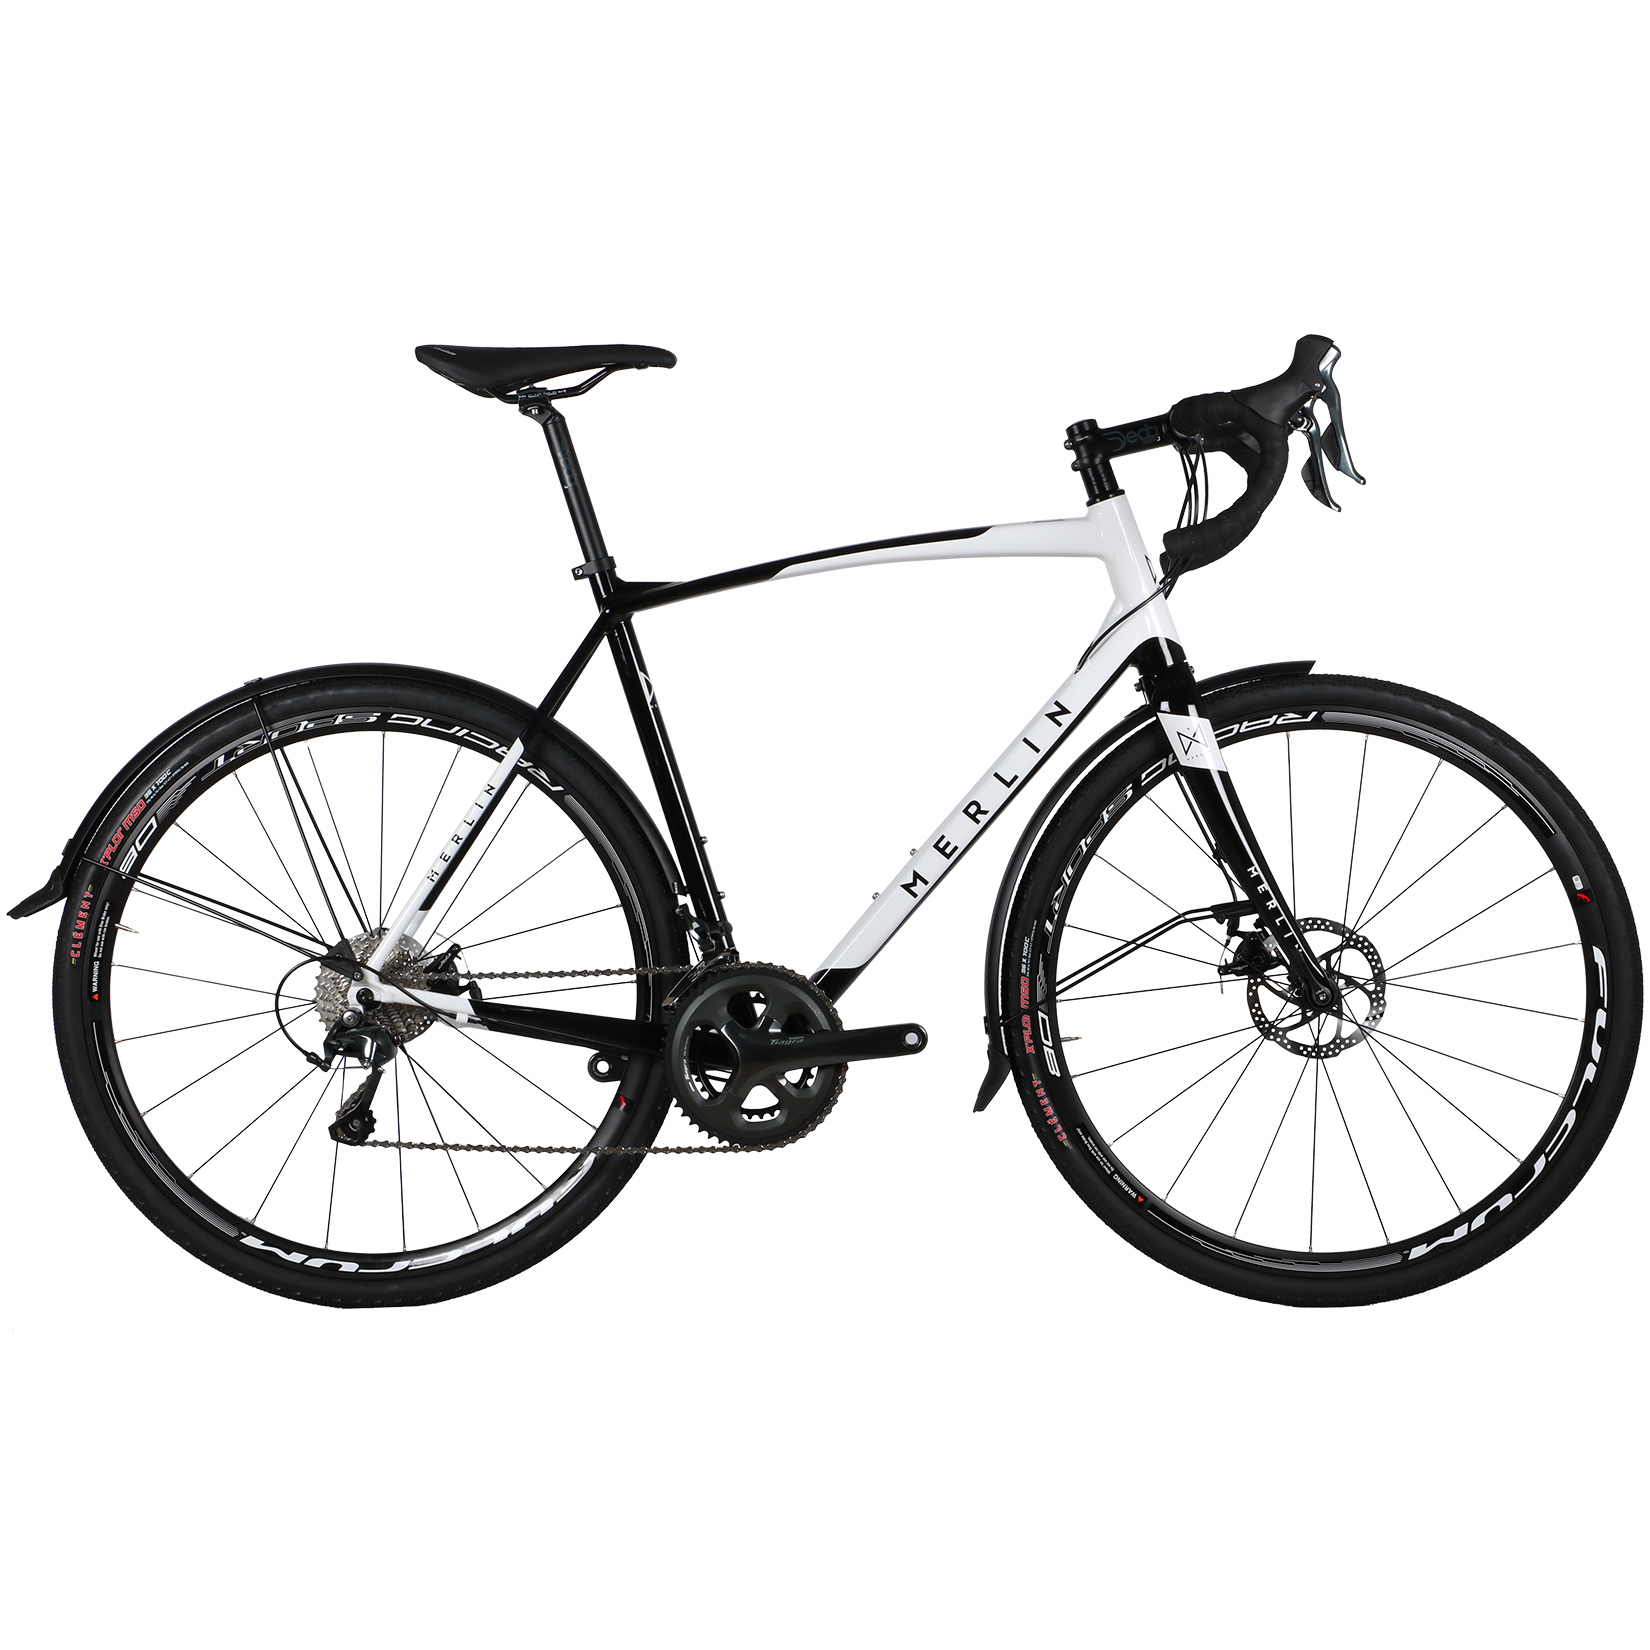 Merlin X3.0 Tiagra Gravel Winter Bike - 2018